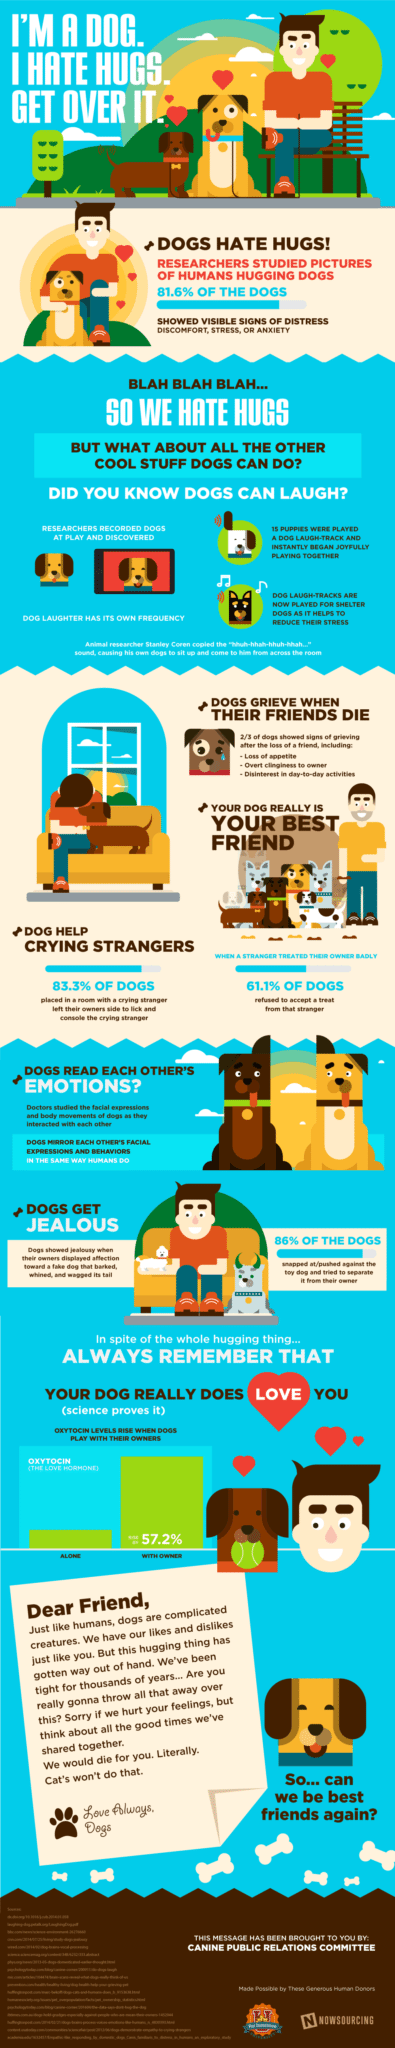 dogs-hate-hugs